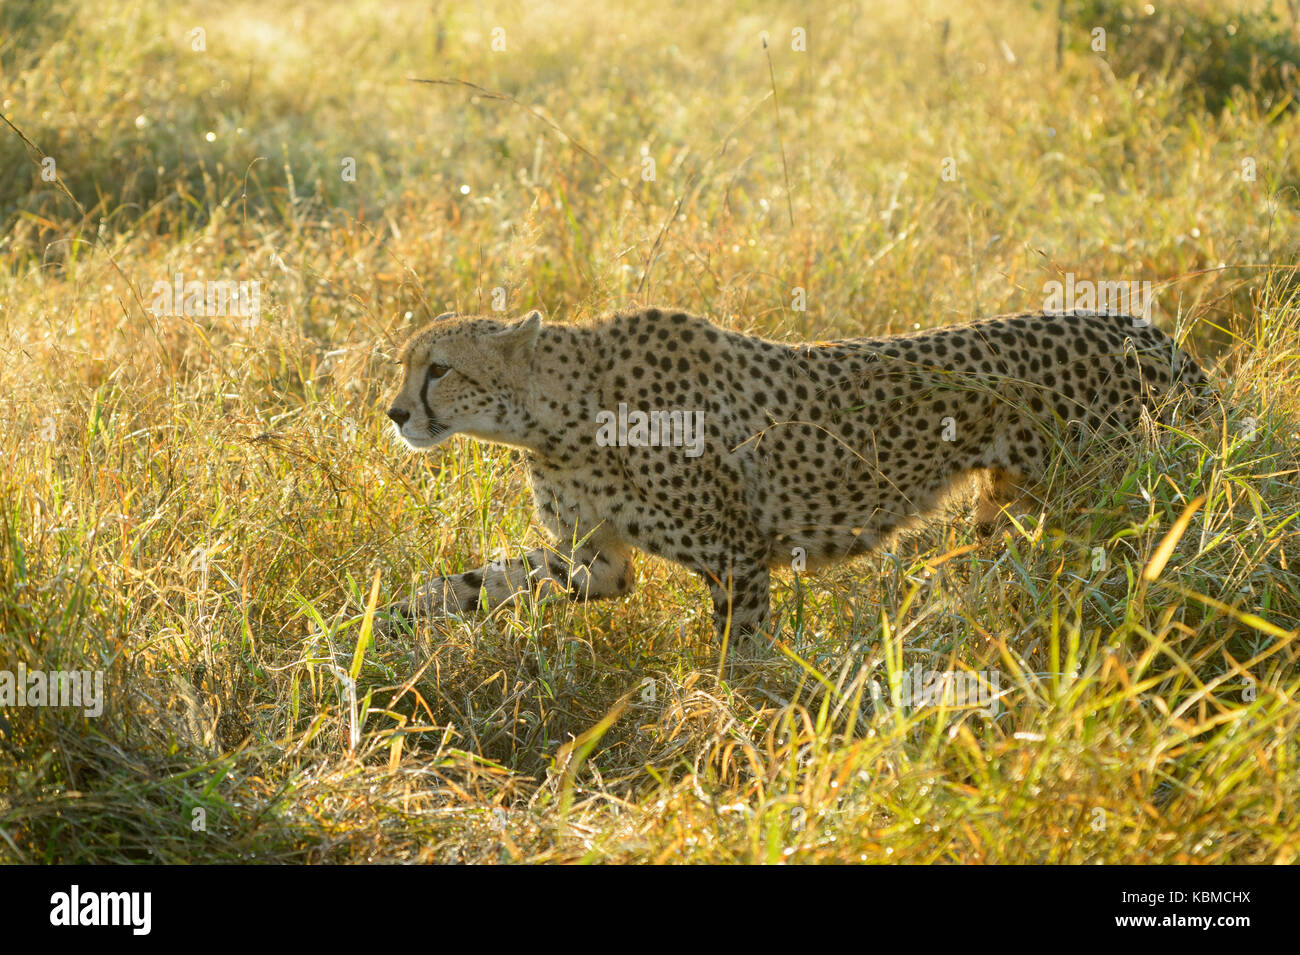 Cheetah (Acinonyx jubatus) walking in grass with backlight, Kruger National Park, Mpumalanga, South Africa - Stock Image